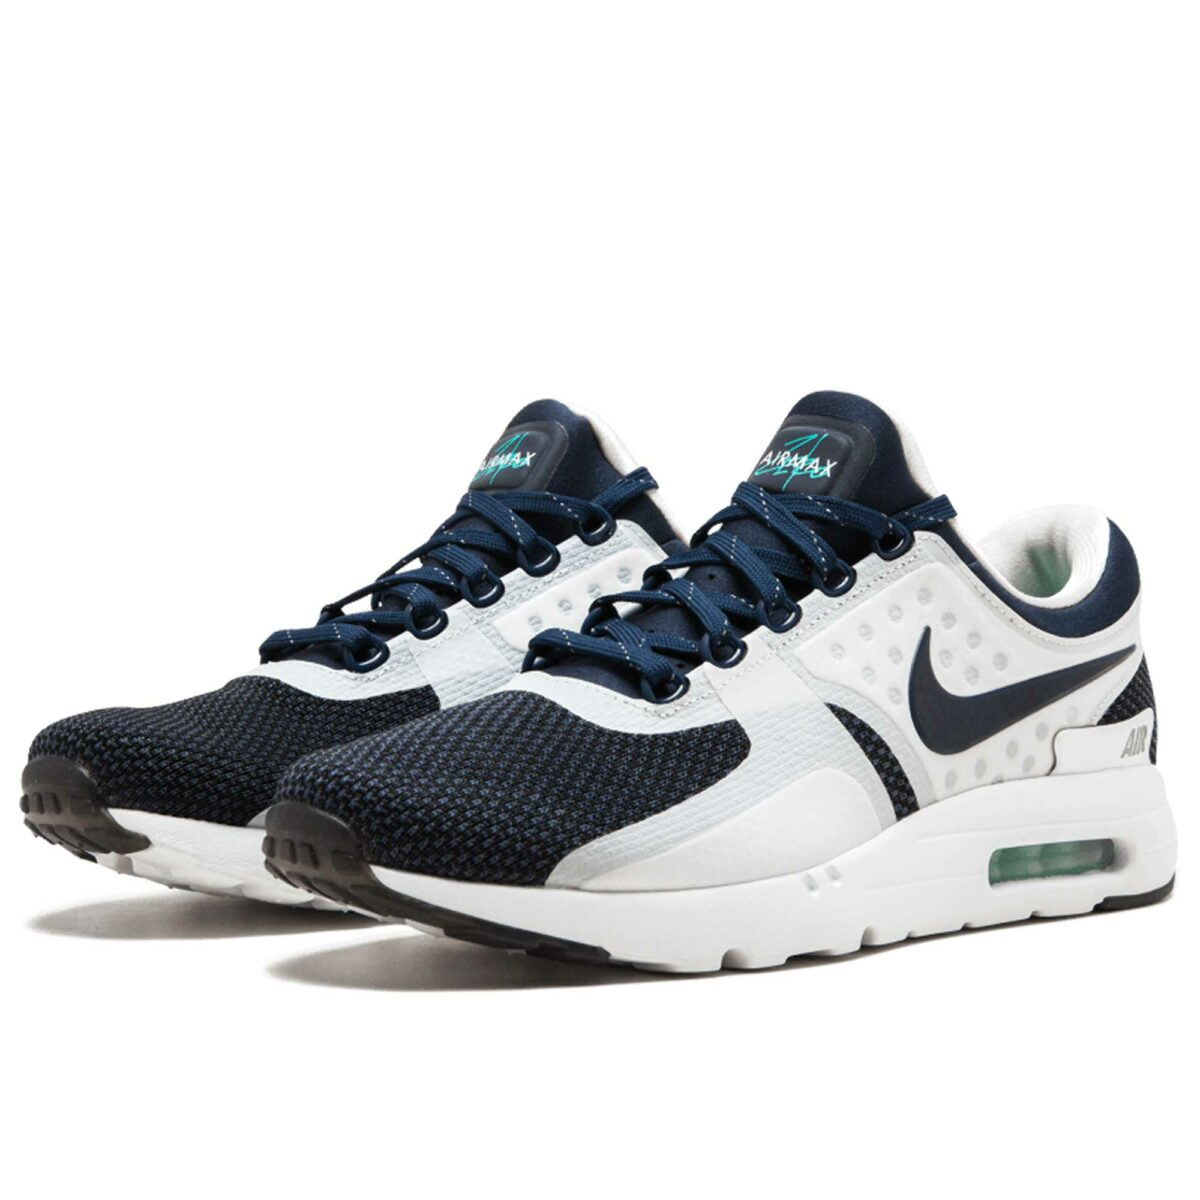 ike air max zero QS 789695_104 купить